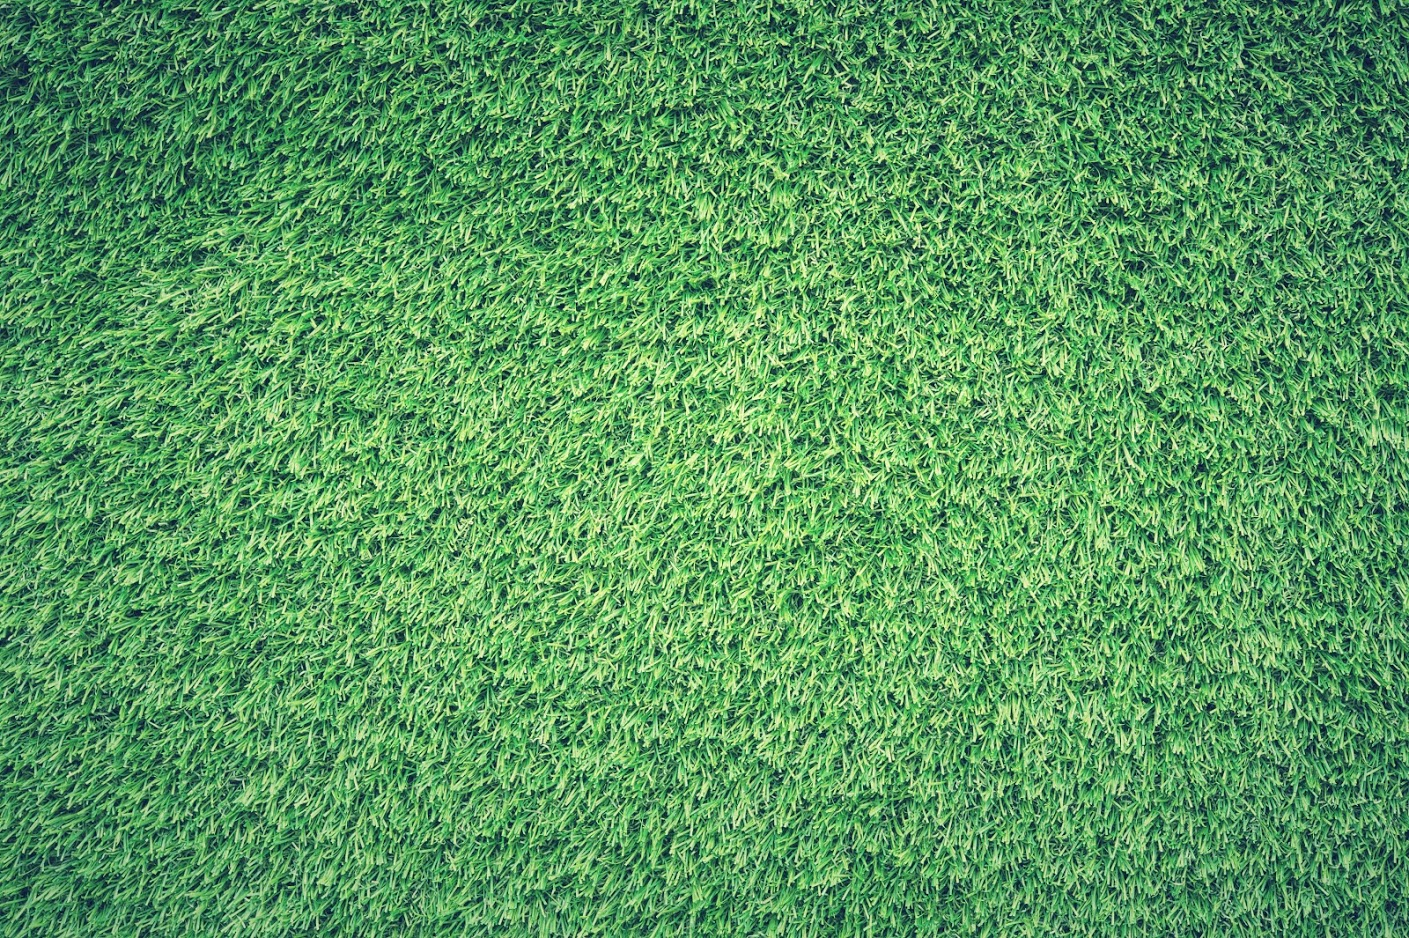 Benefits of an Artificial Turf Lawn for Your Backyard - image  on https://www.sunburstlandscaping.com